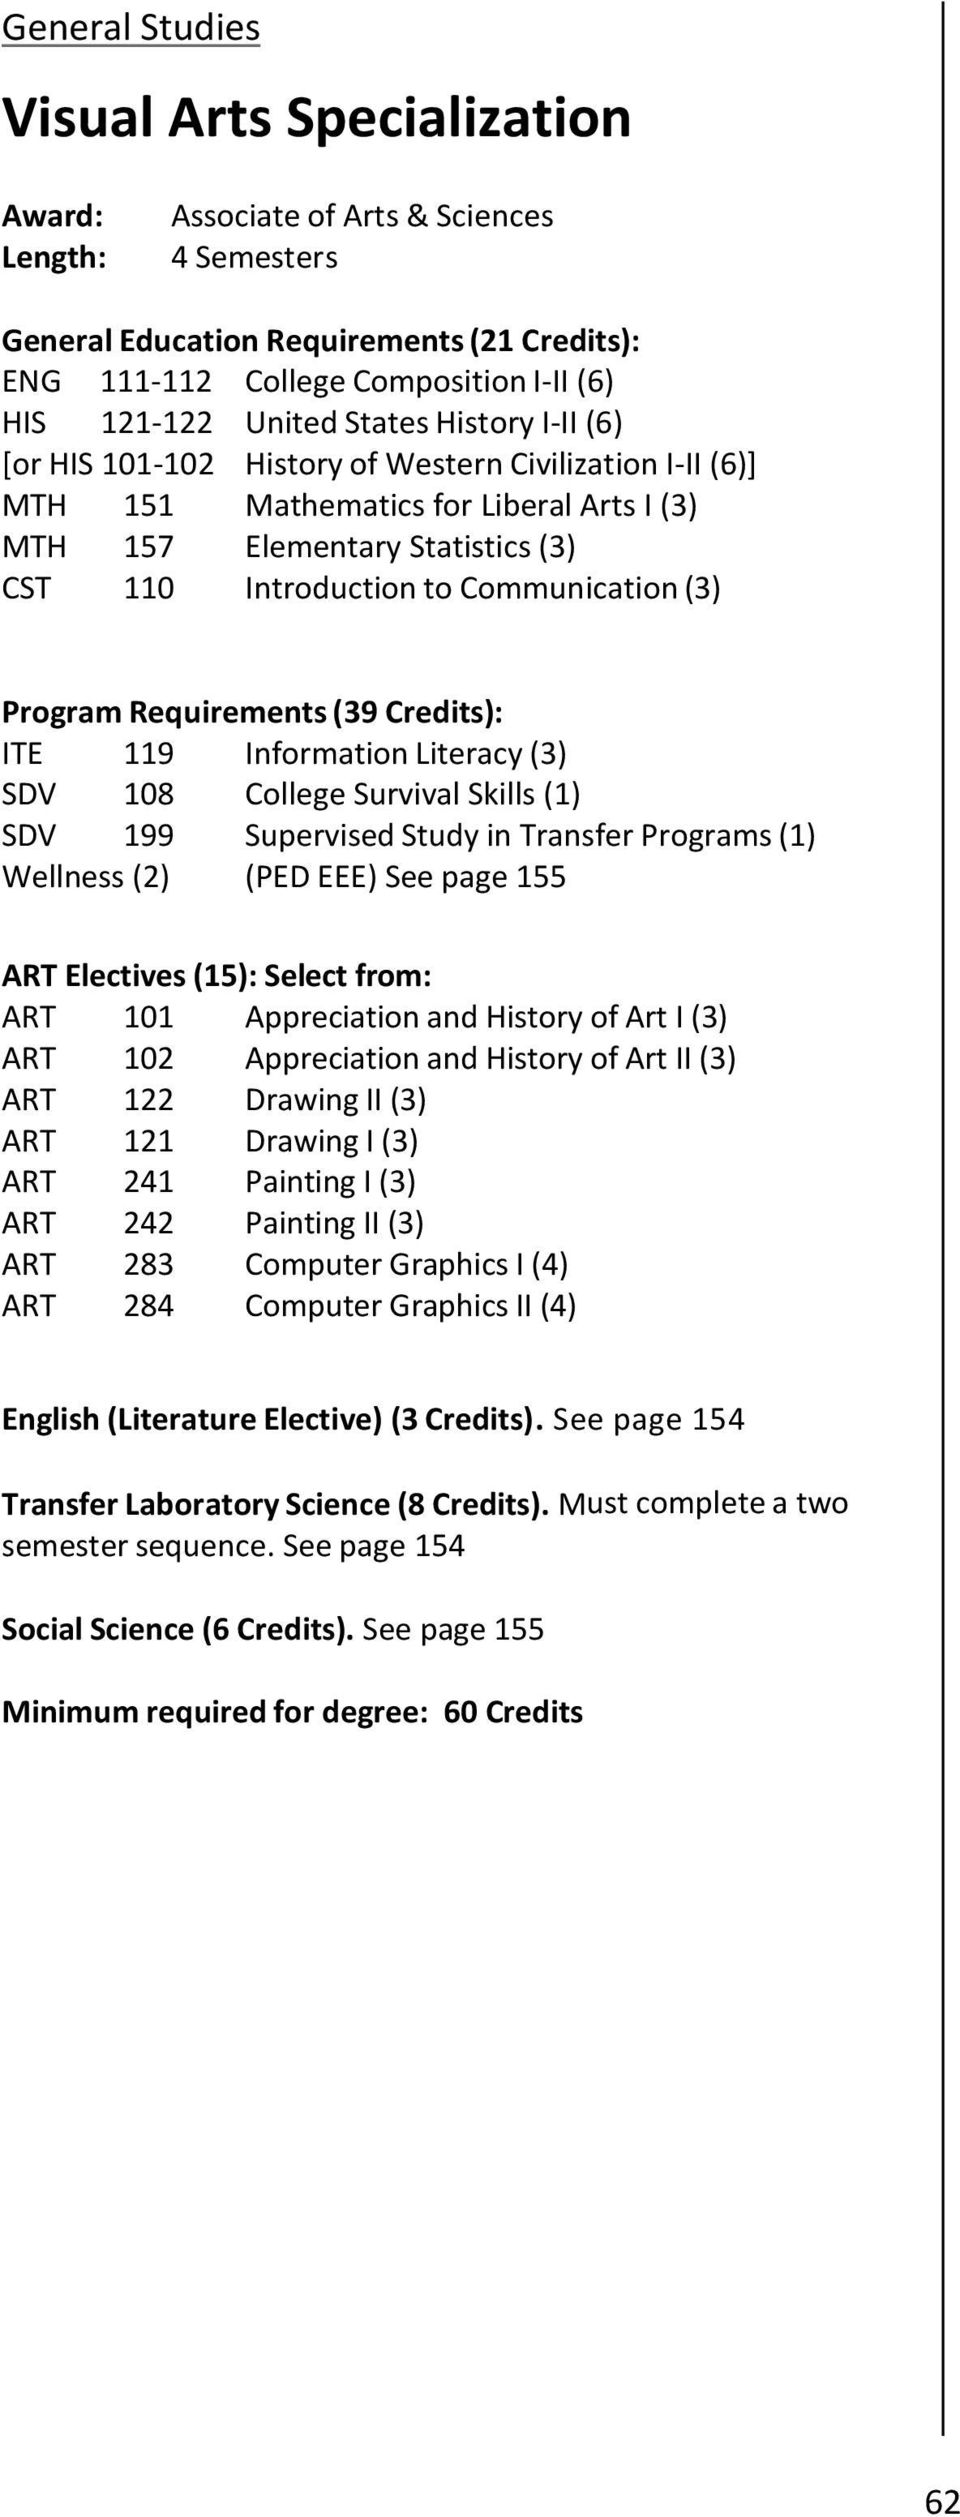 Communication (3) Program Requirements (39 Credits): ITE 119 Information Literacy (3) SDV 199 Supervised Study in Transfer Programs (1) Wellness (2) (PED EEE) See page 155 ART Electives (15): Select